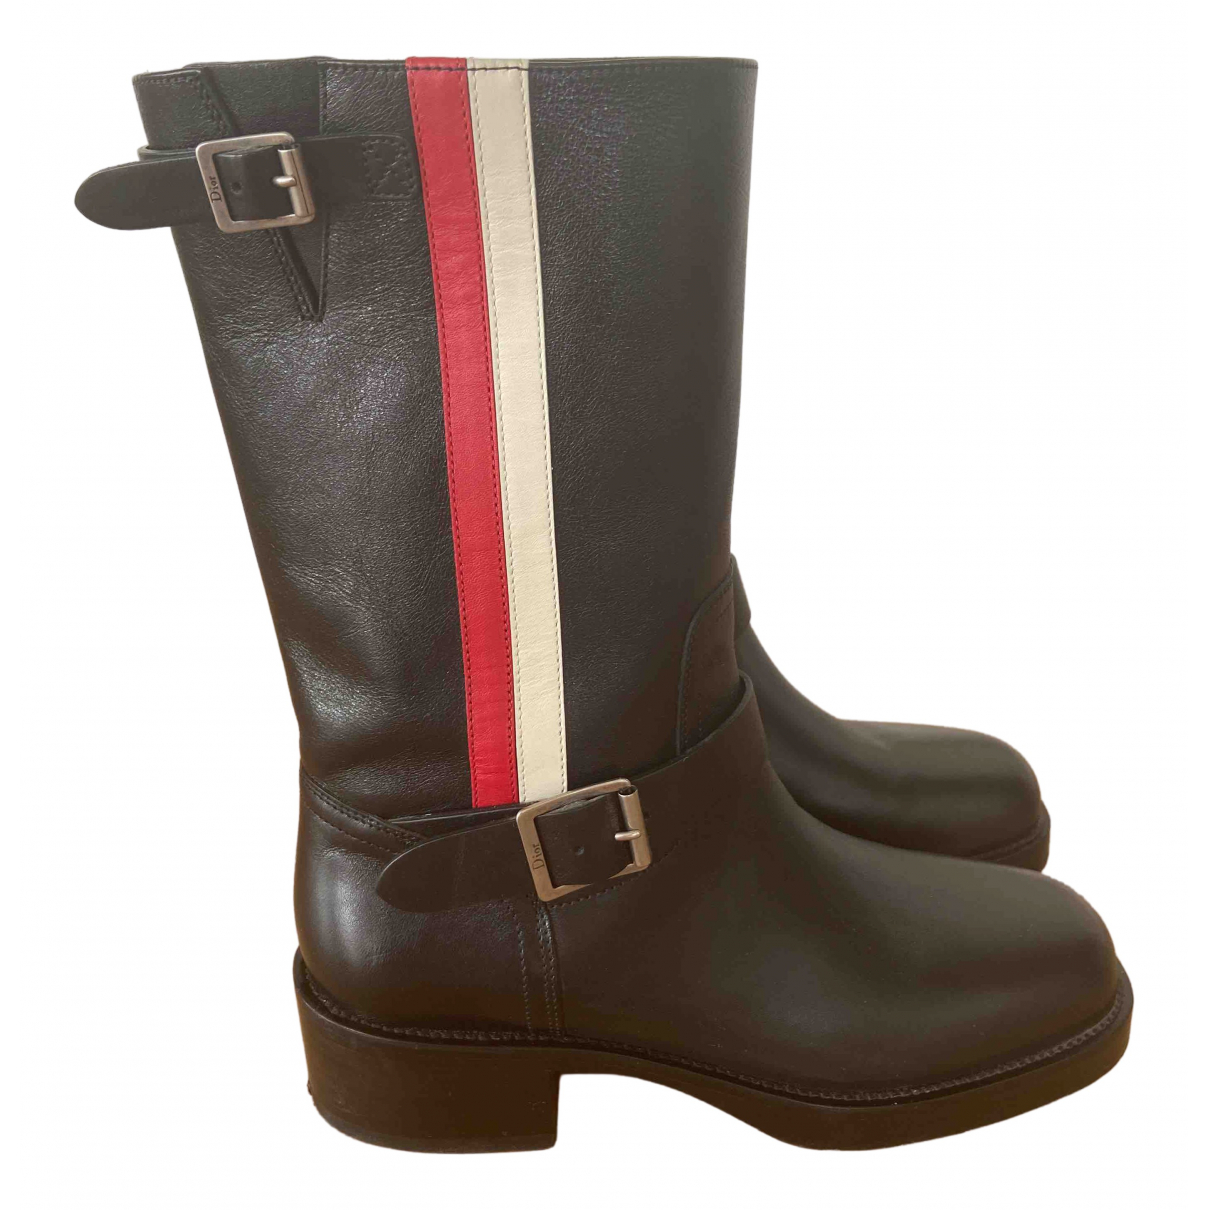 Dior \N Black Leather Boots for Women 36 EU